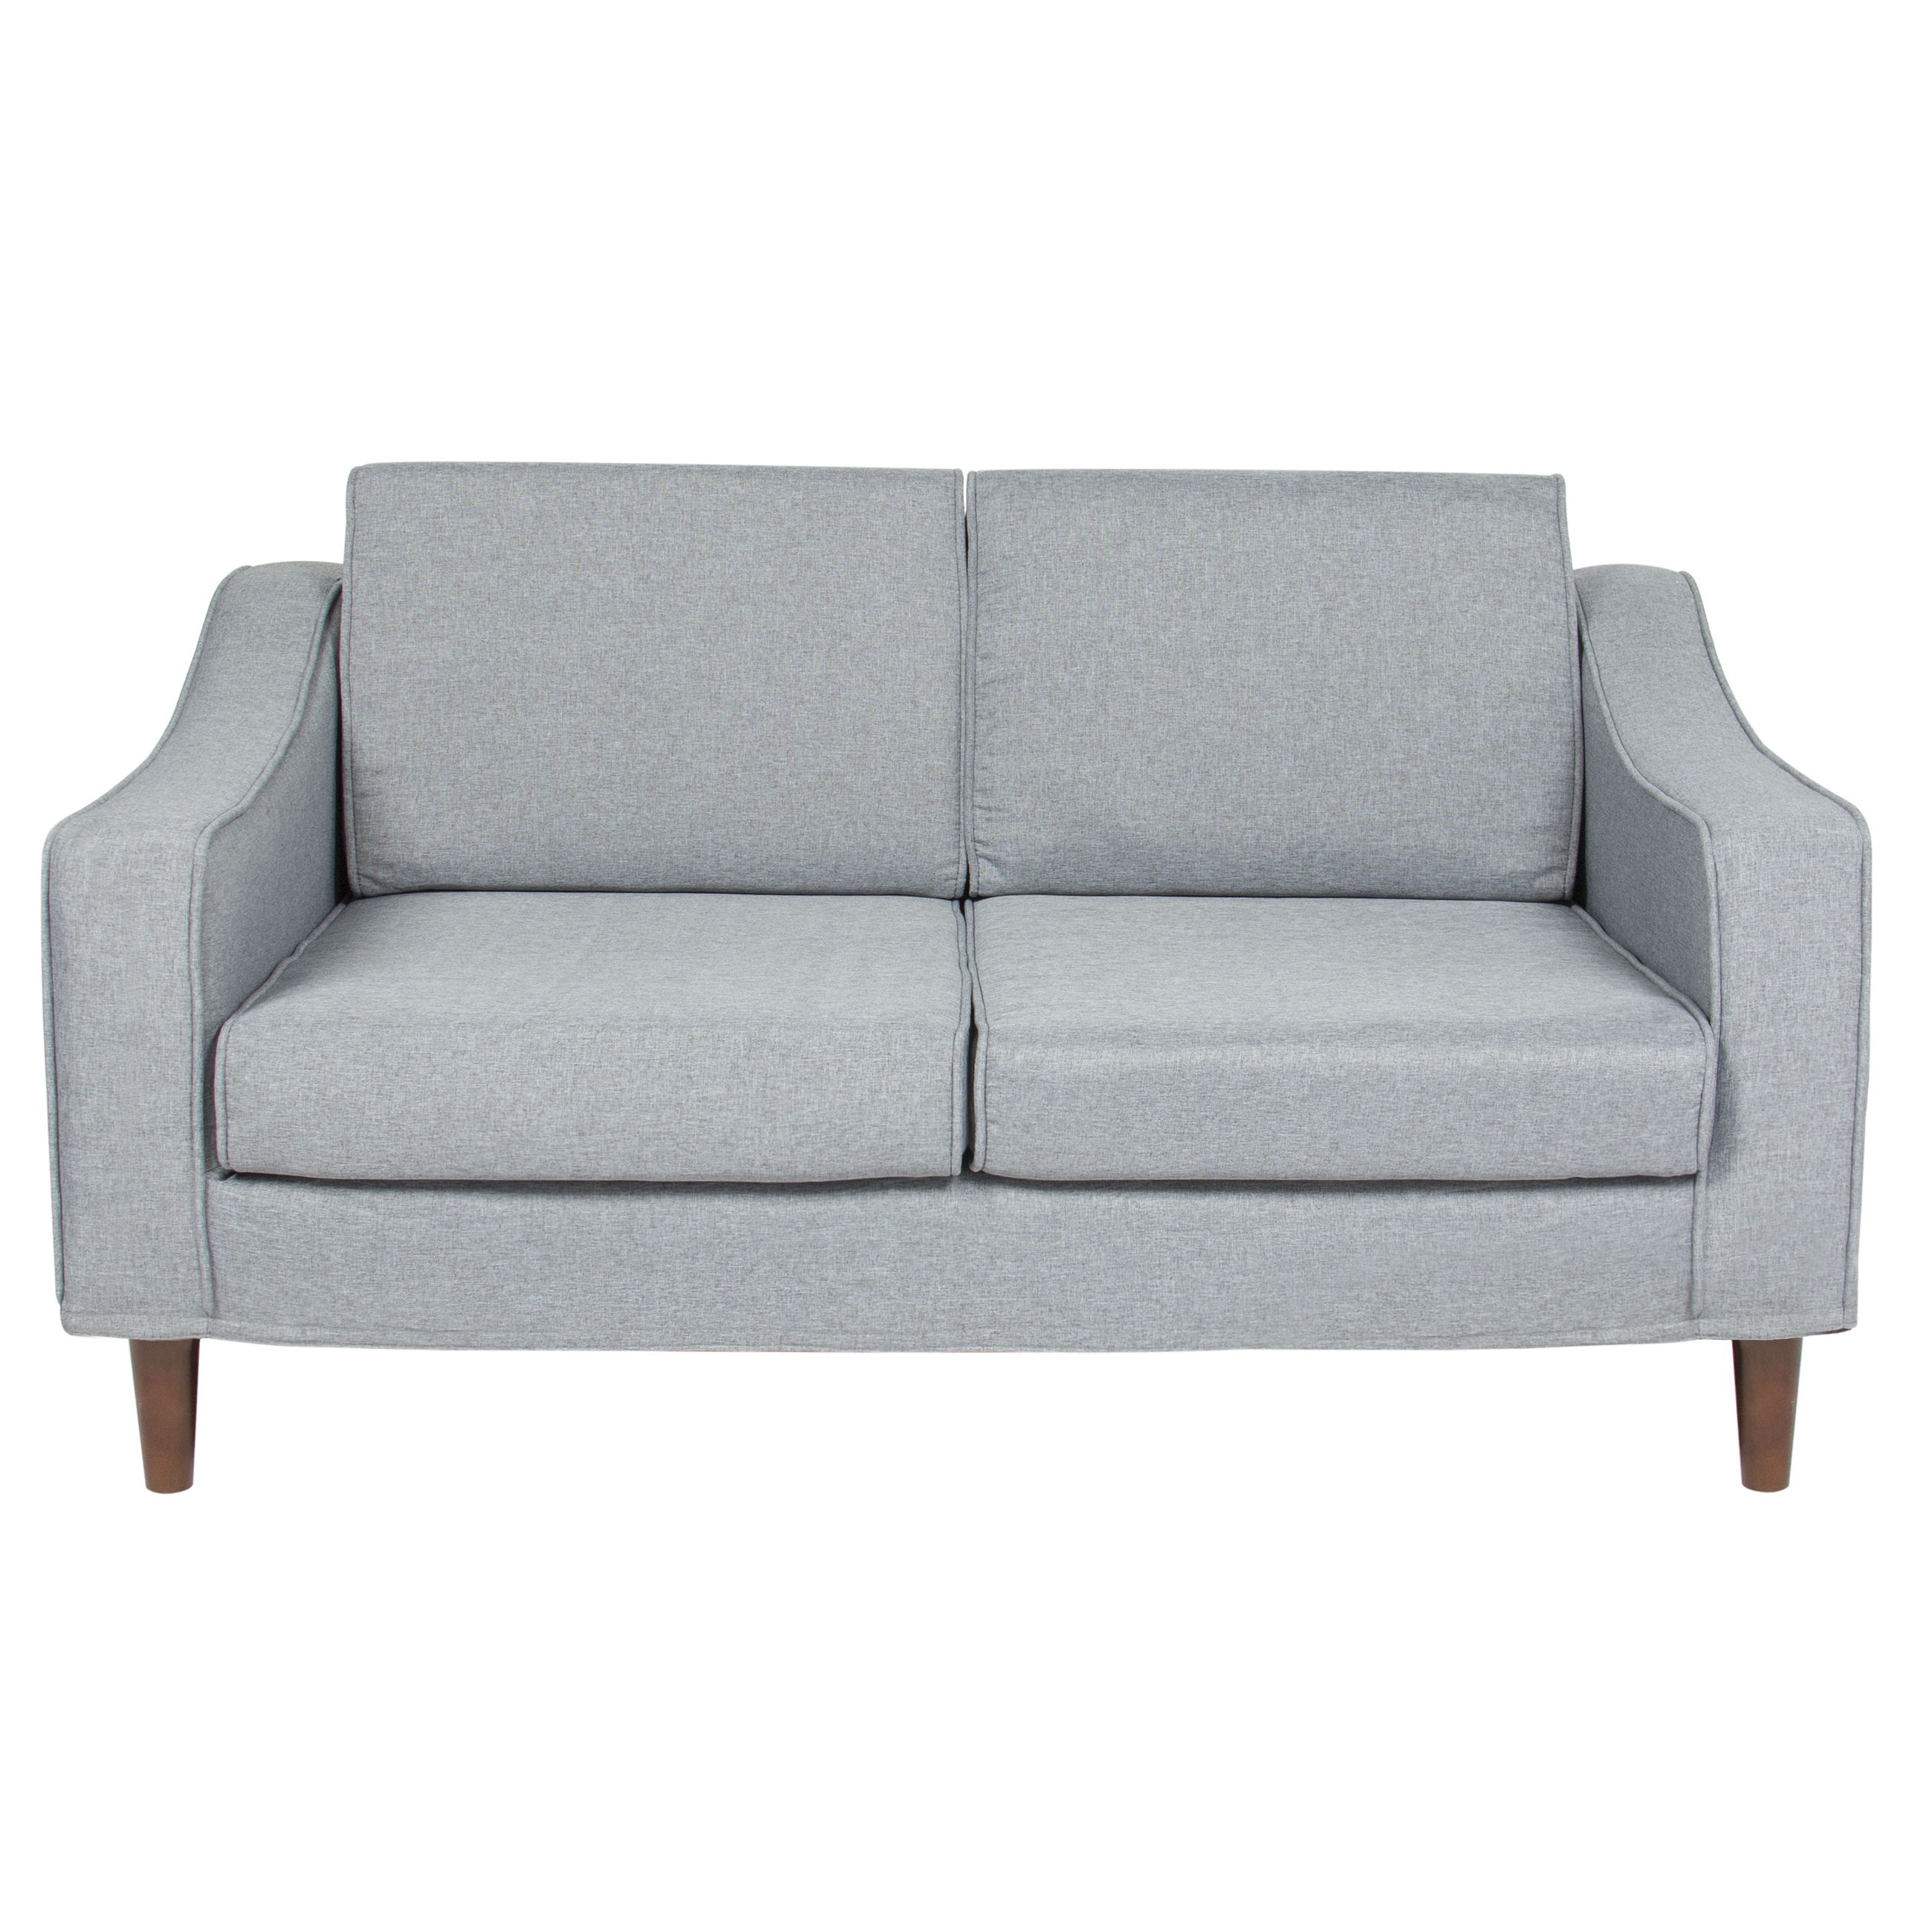 Best Choice Products Modern Furniture Loveseat Sofa Living Room